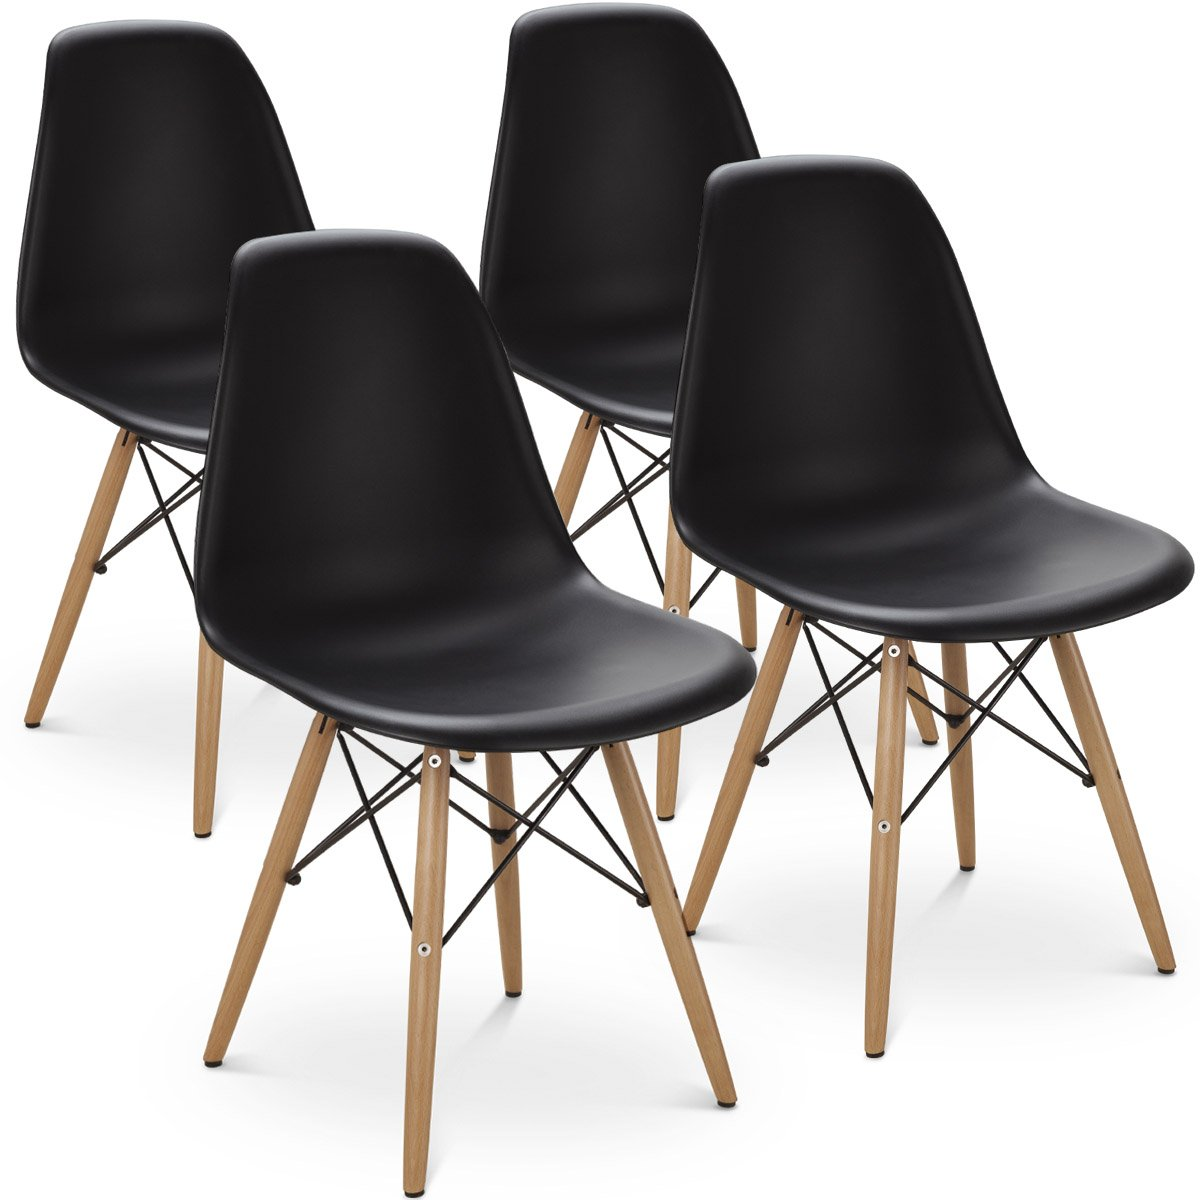 Giantex Set of 4 Mid Century Modern Style DSW Dining Chair Side Wood Assembled Legs for Kitchen, Dining, Bedroom, Living Room (4PCS, Black) by Giantex